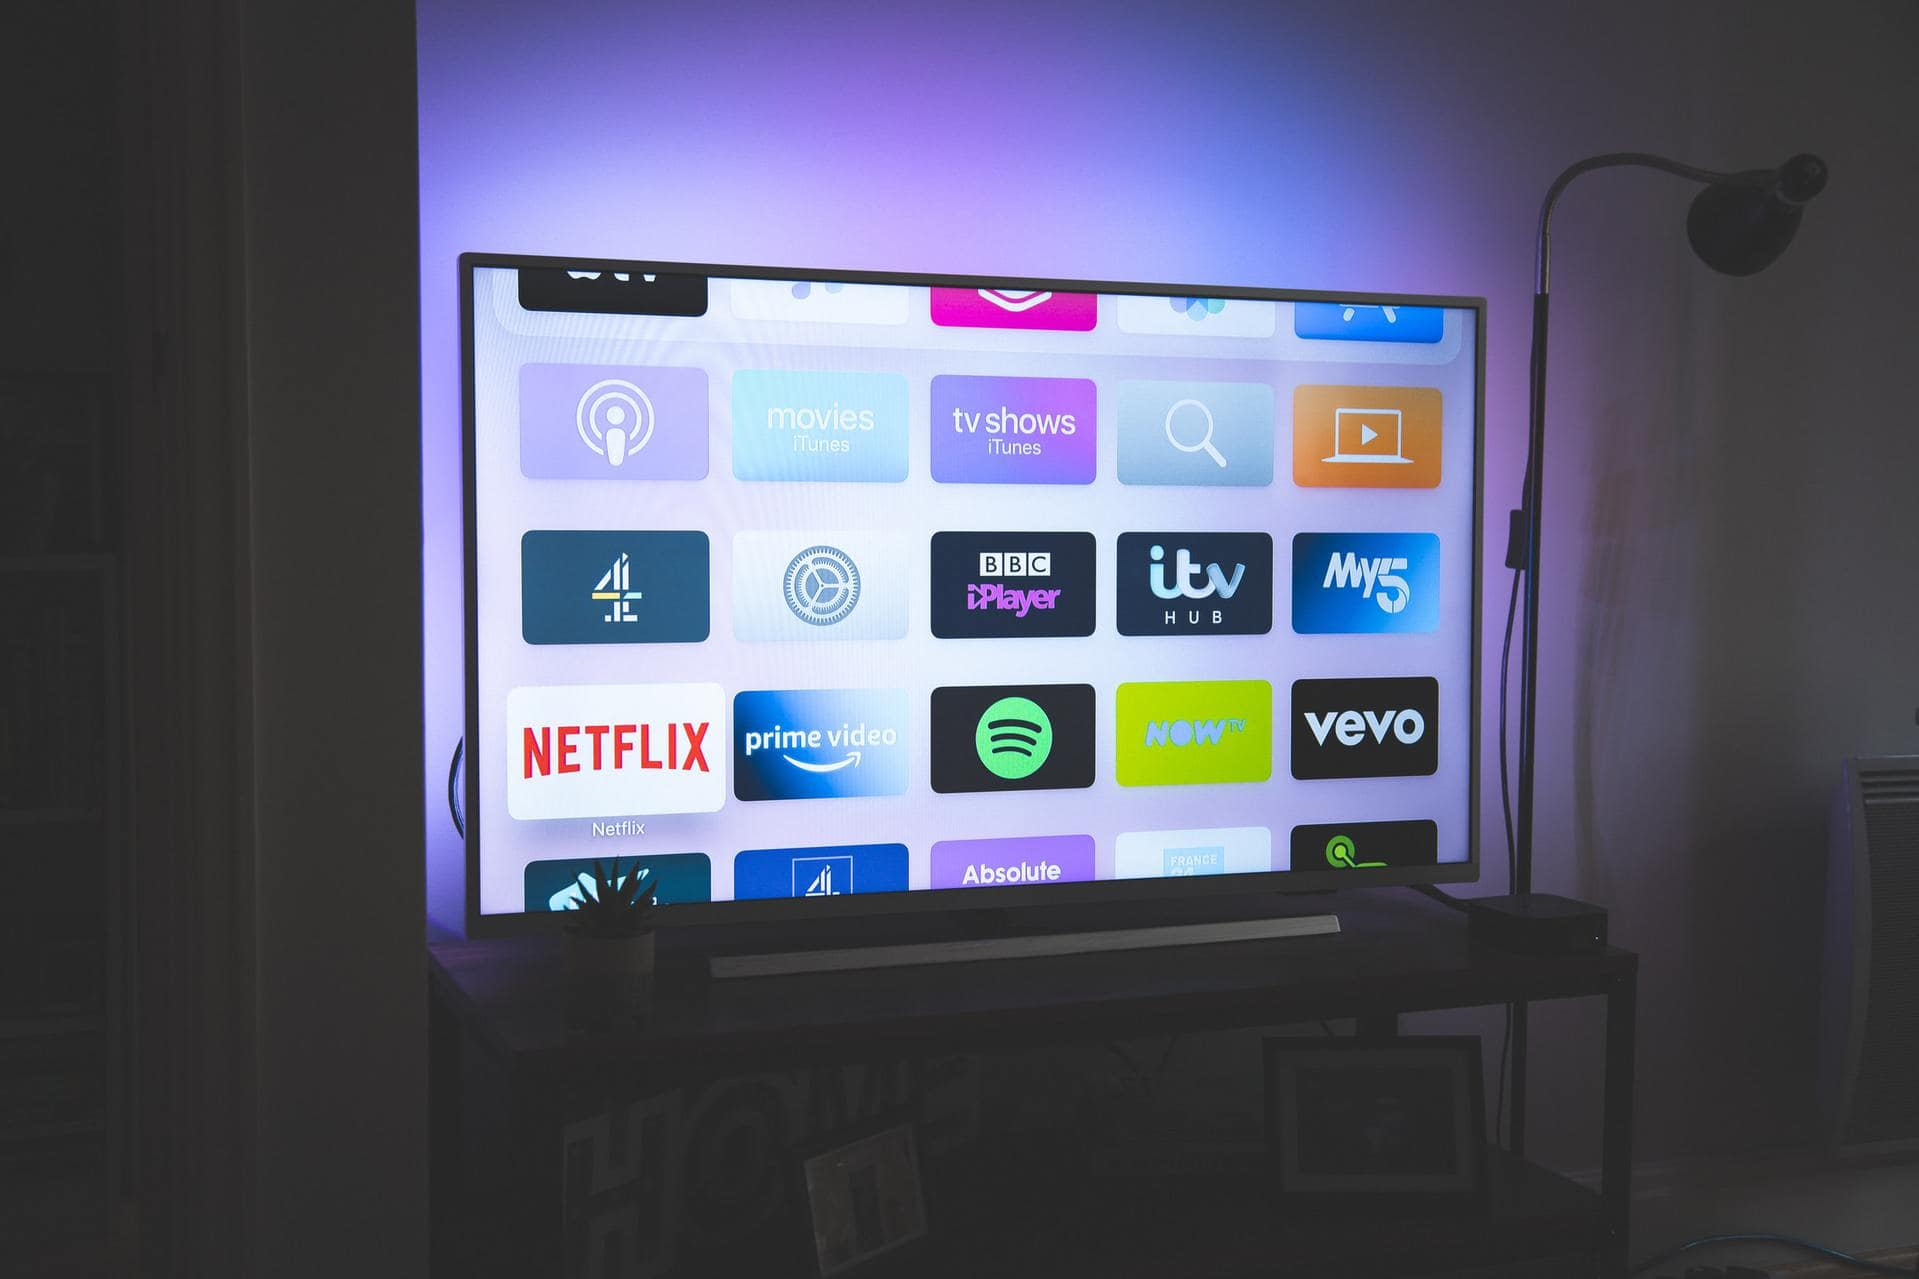 Top 4 Live TV Streaming Services: Cord-Cutters Guide